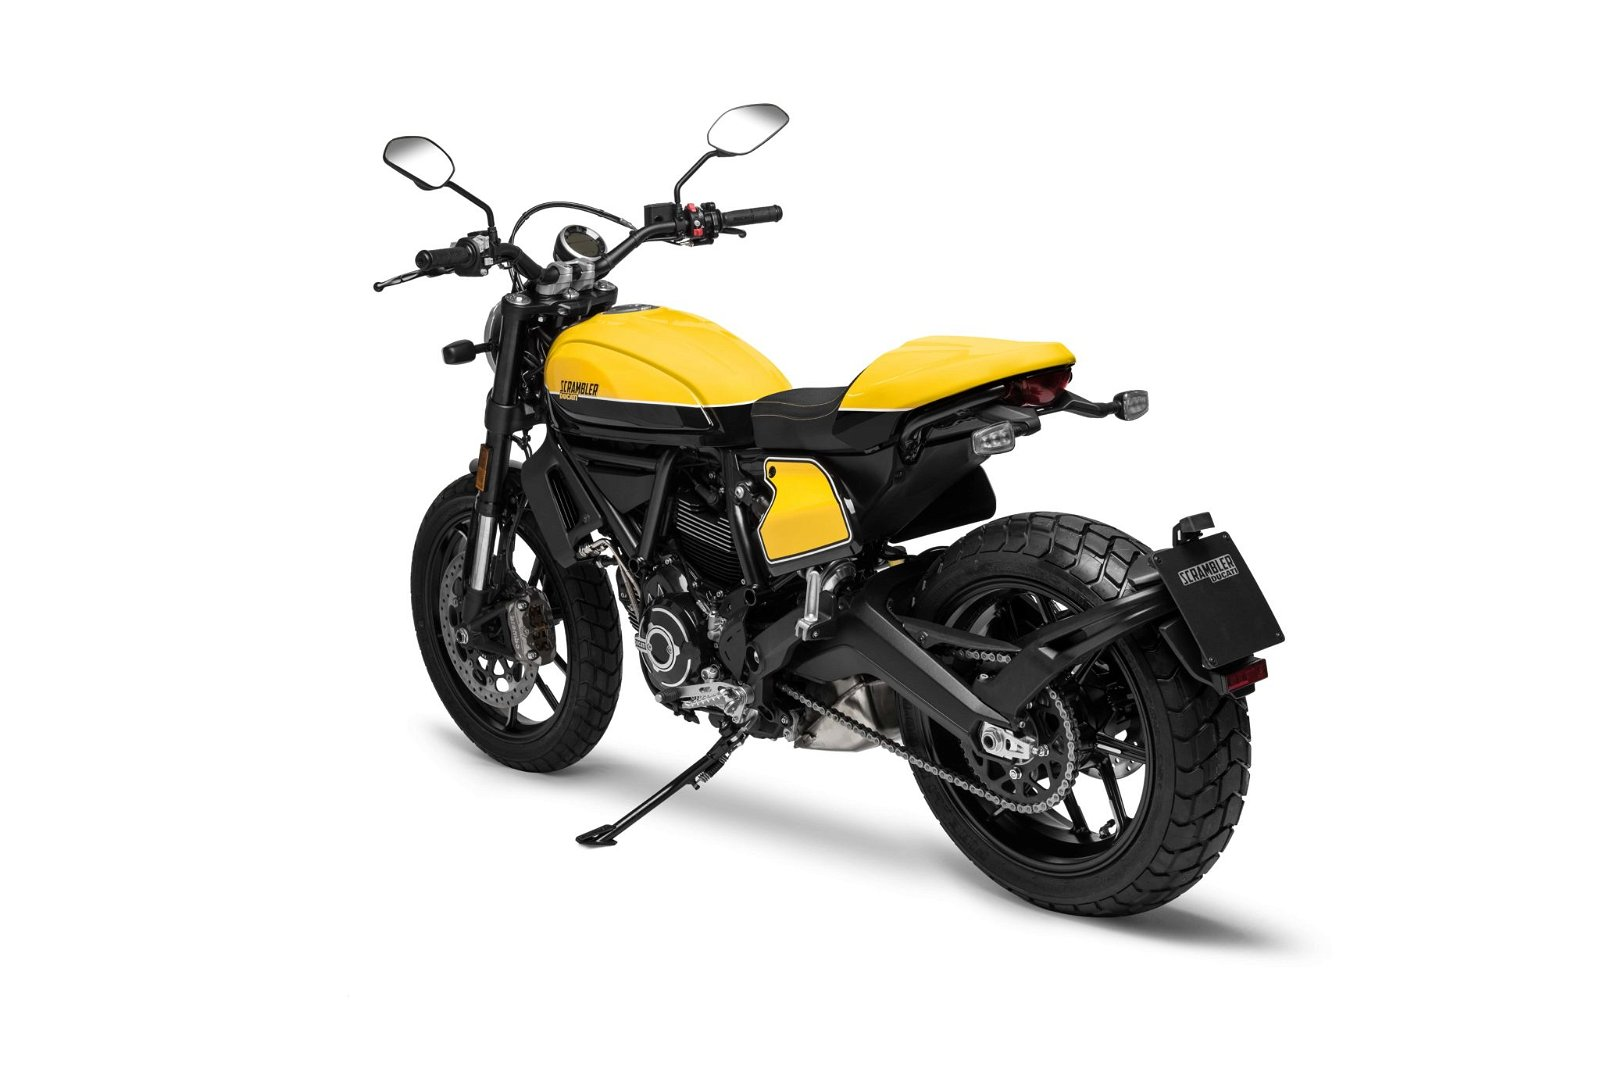 Ducati Scrambler Full Throttle side stand